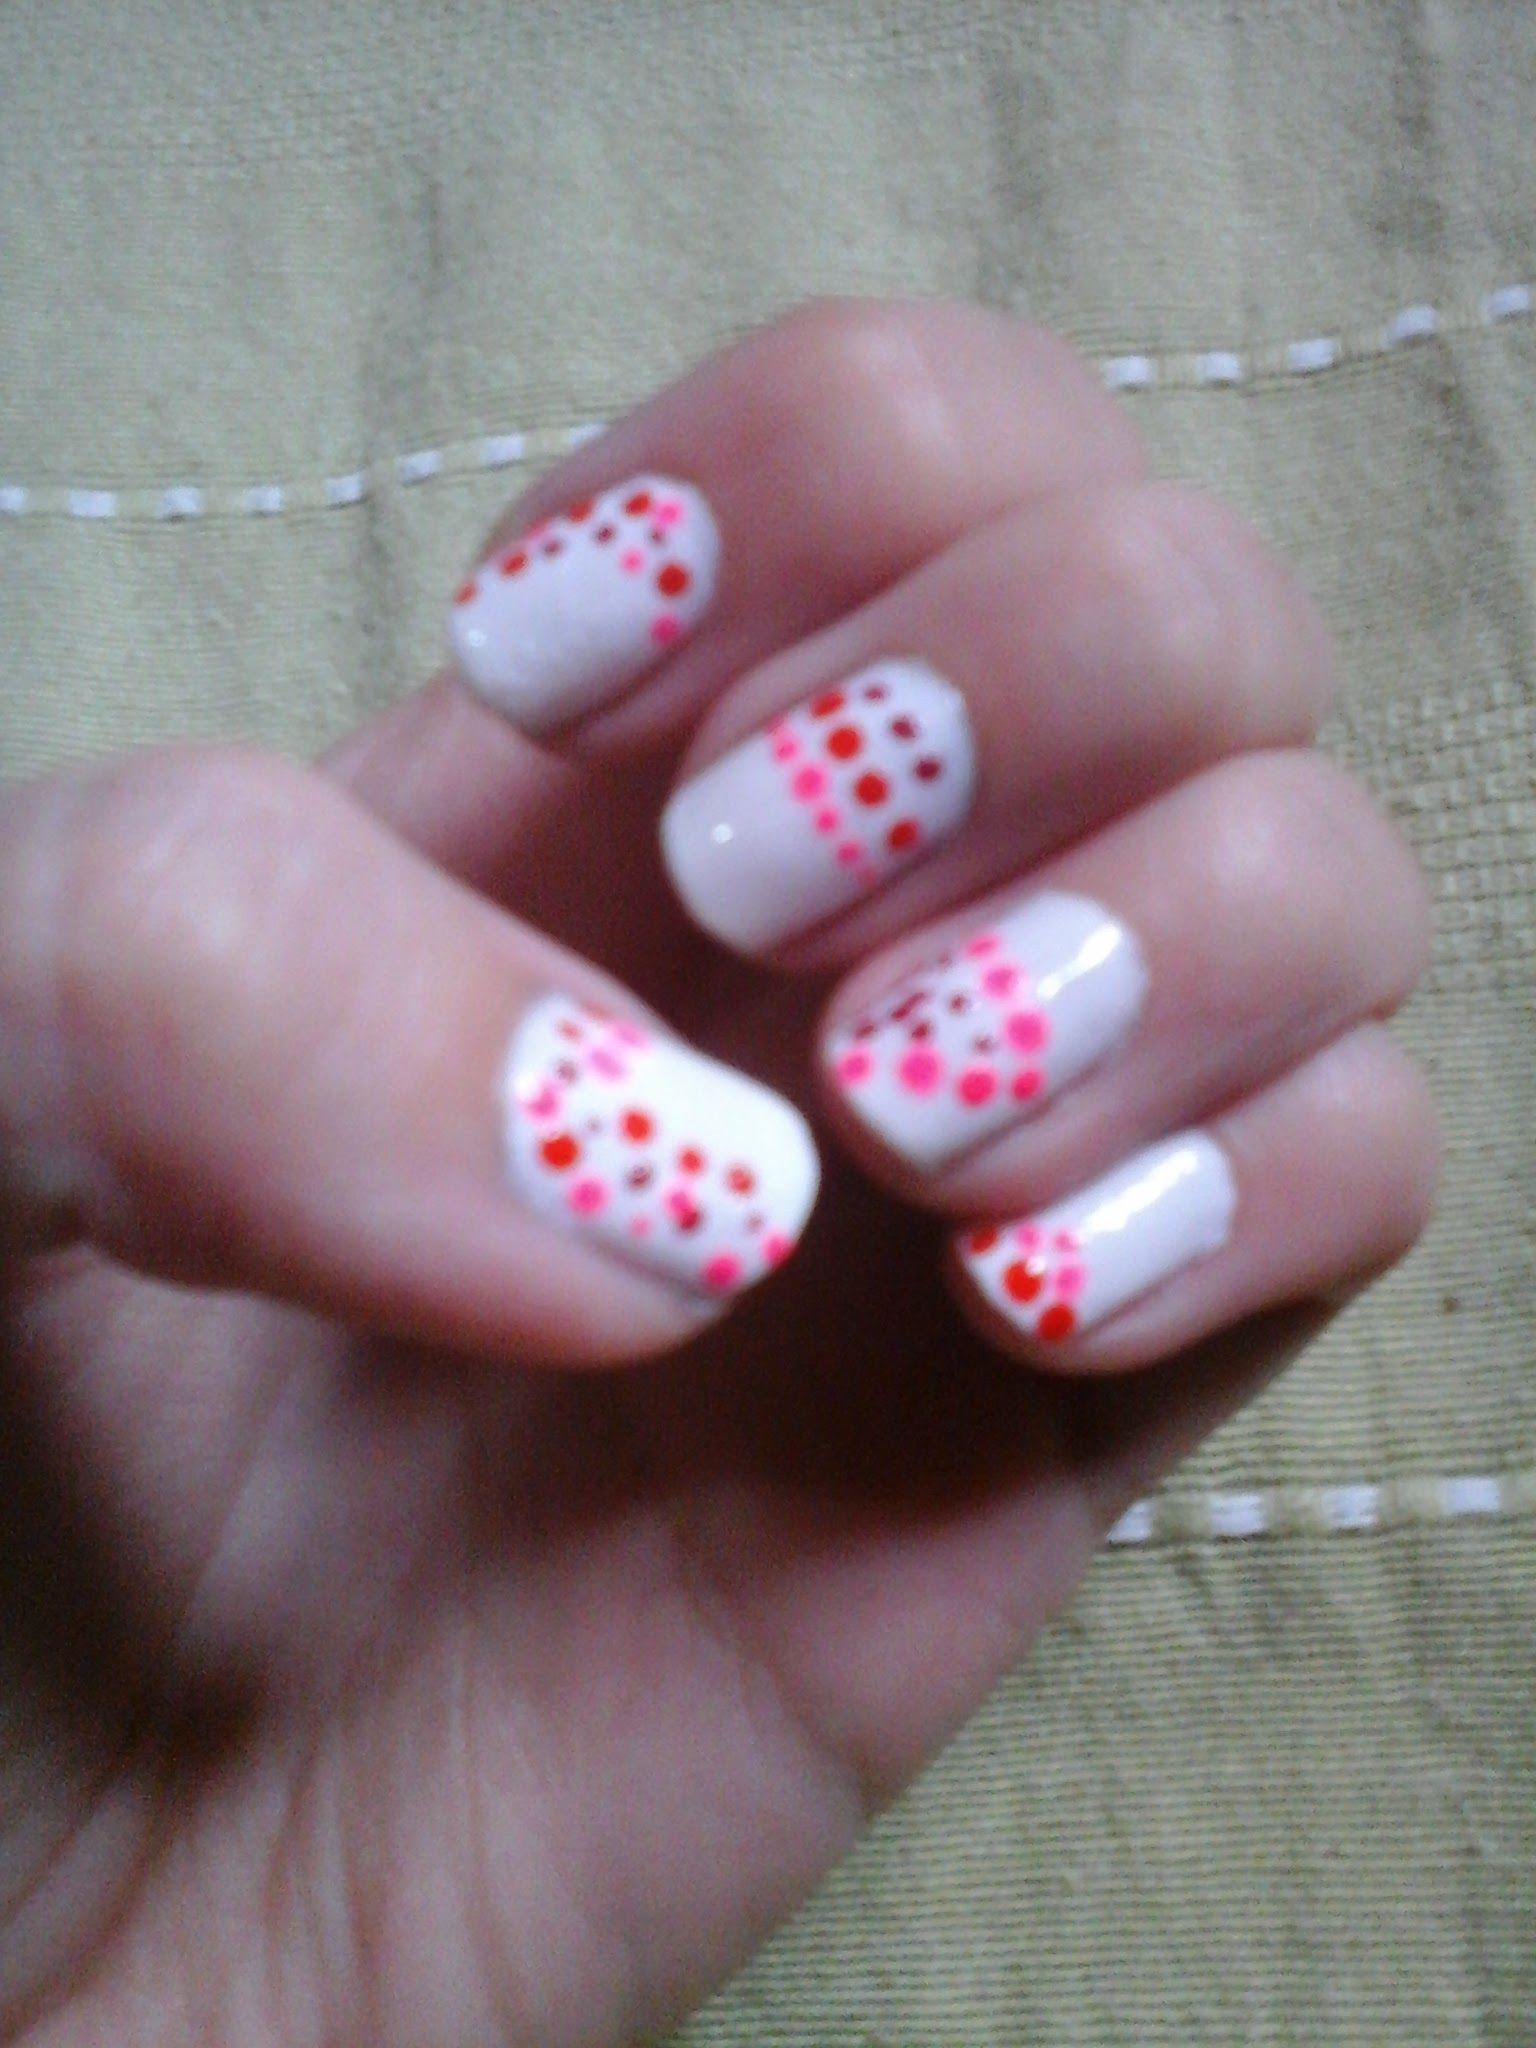 White Base And Polka Dots In Different Shades Of Pink